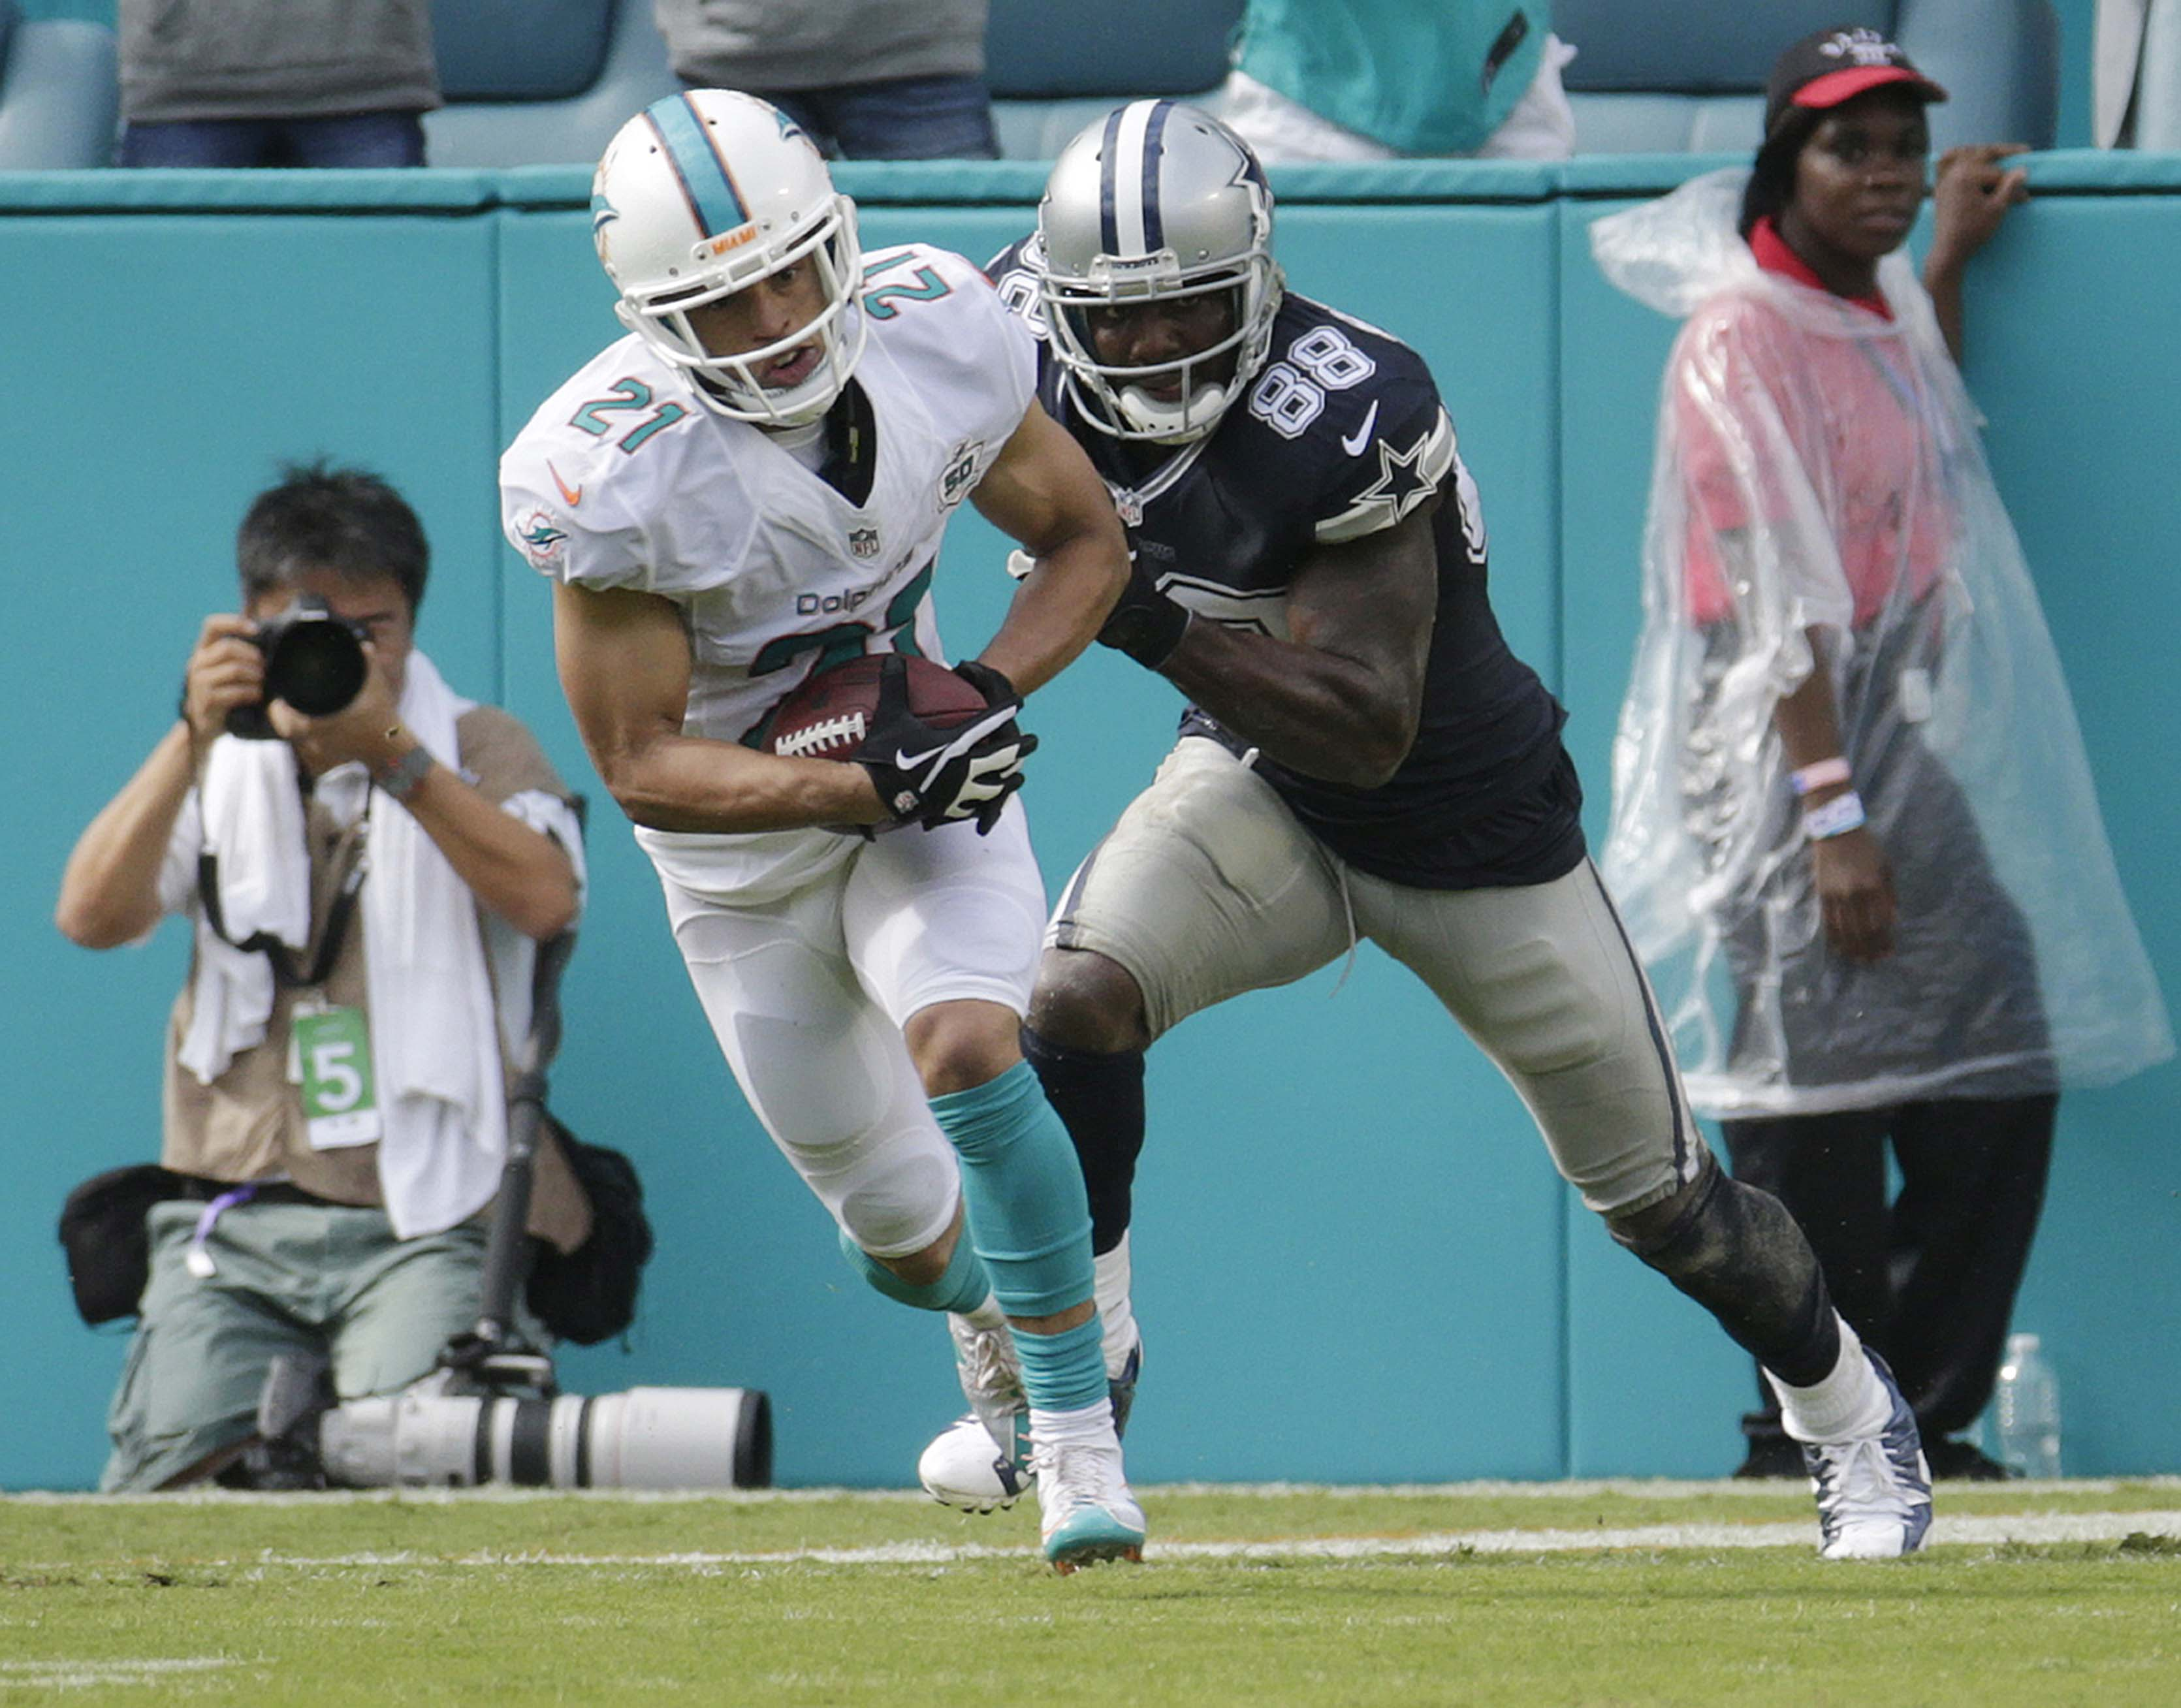 Miami Dolphins cornerback Brent Grimes (21) intercepts the ball as Dallas Cowboys wide receiver Dez Bryant (88) attempts top tackle during the first half of an NFL football game, Sunday, Nov. 22, 2015, in Miami Gardens, Fla.  (AP Photo/Lynne Sladky)